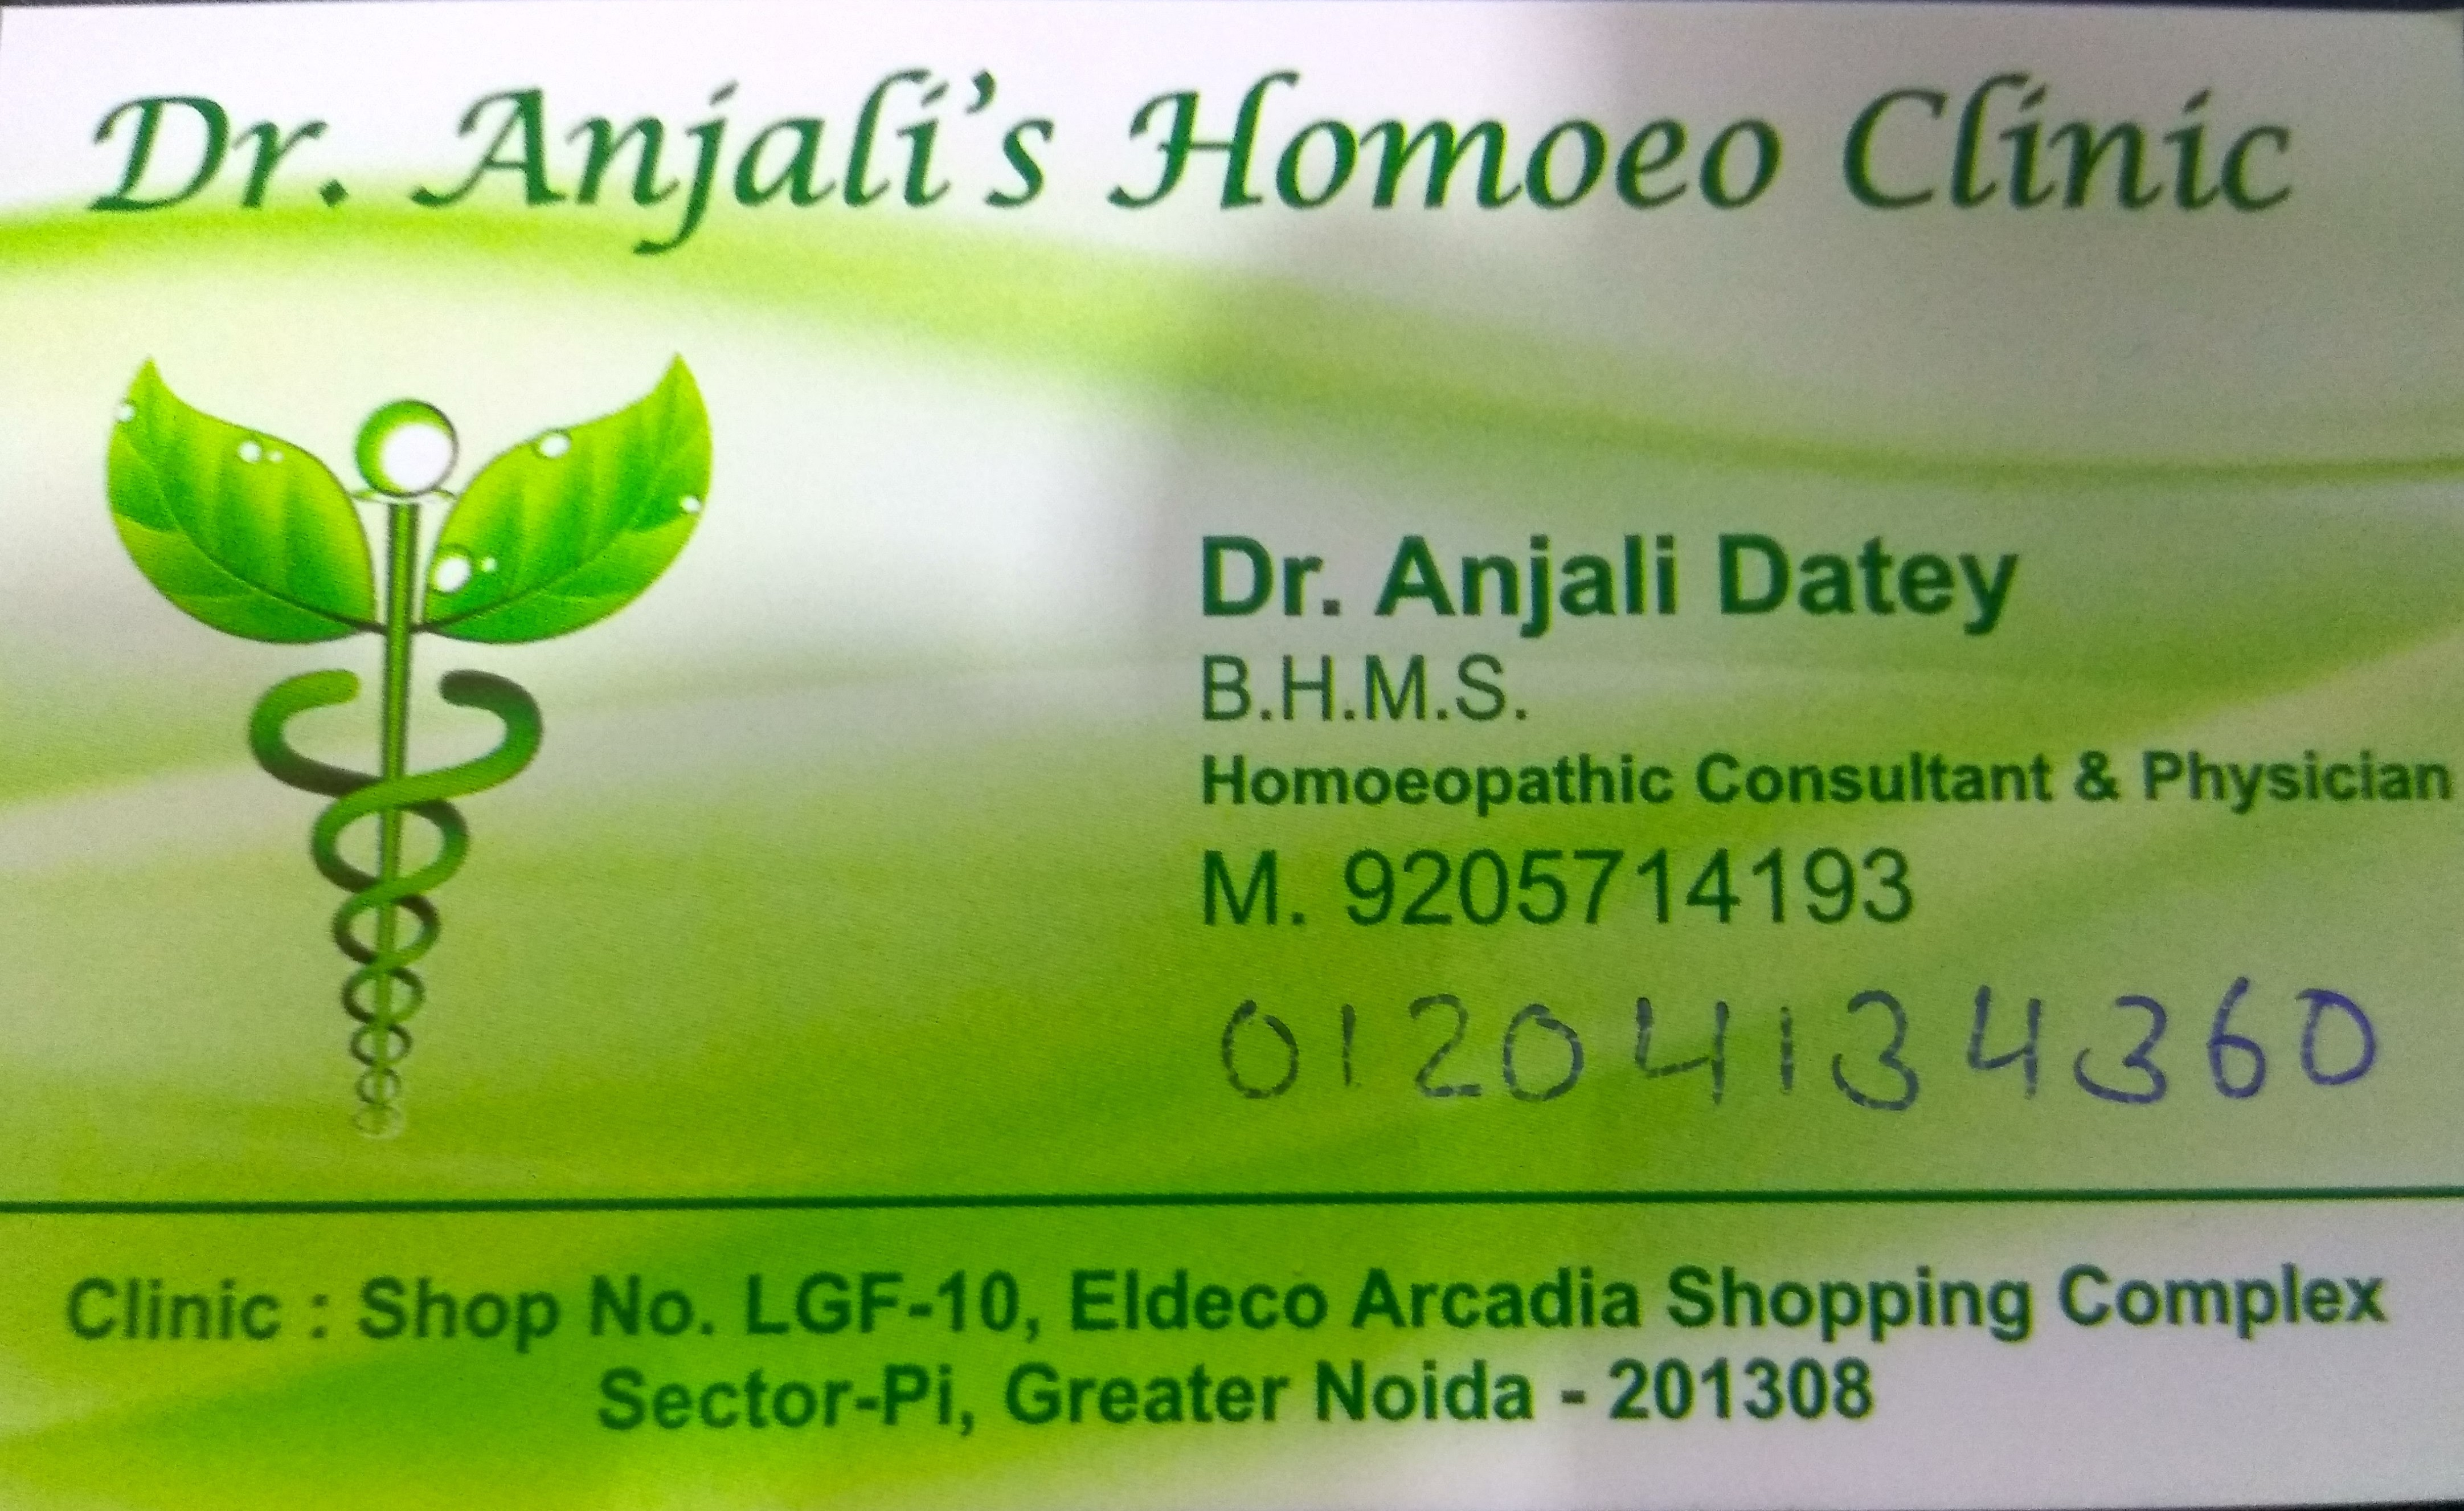 Dr. Anjali's Homeo Clinic